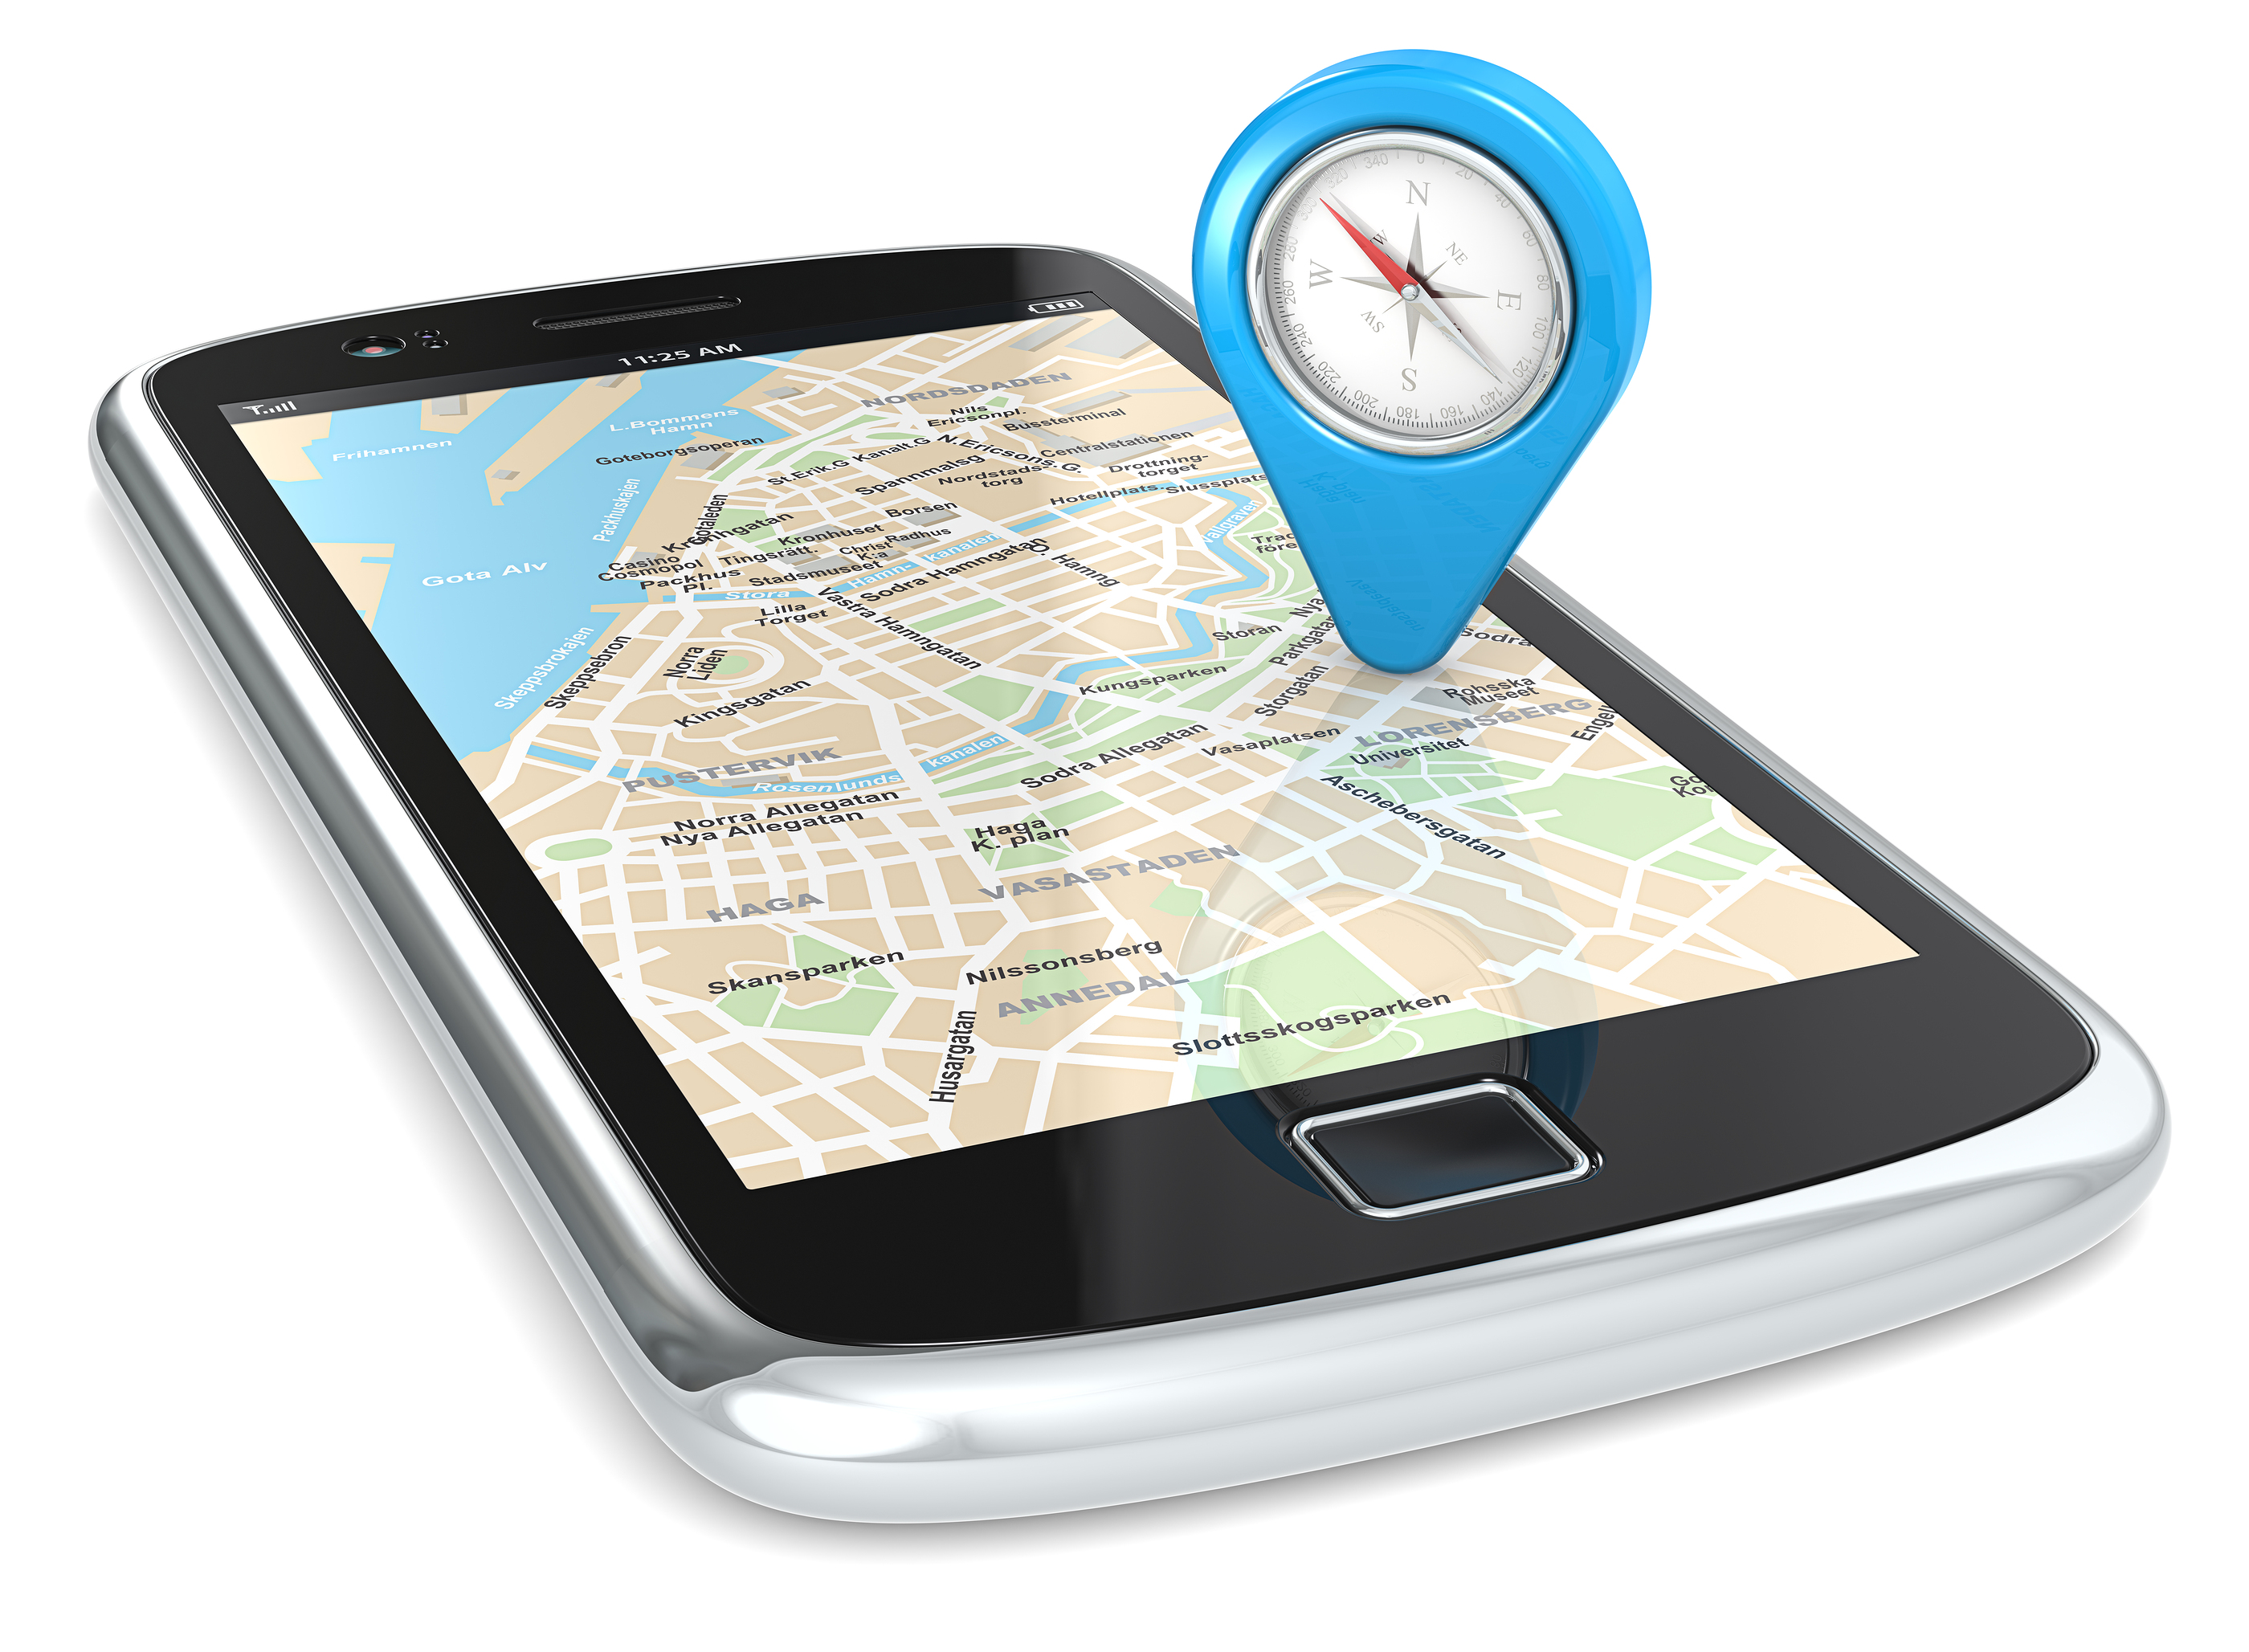 Gps Address Locator : Monitor gps location is your child safe